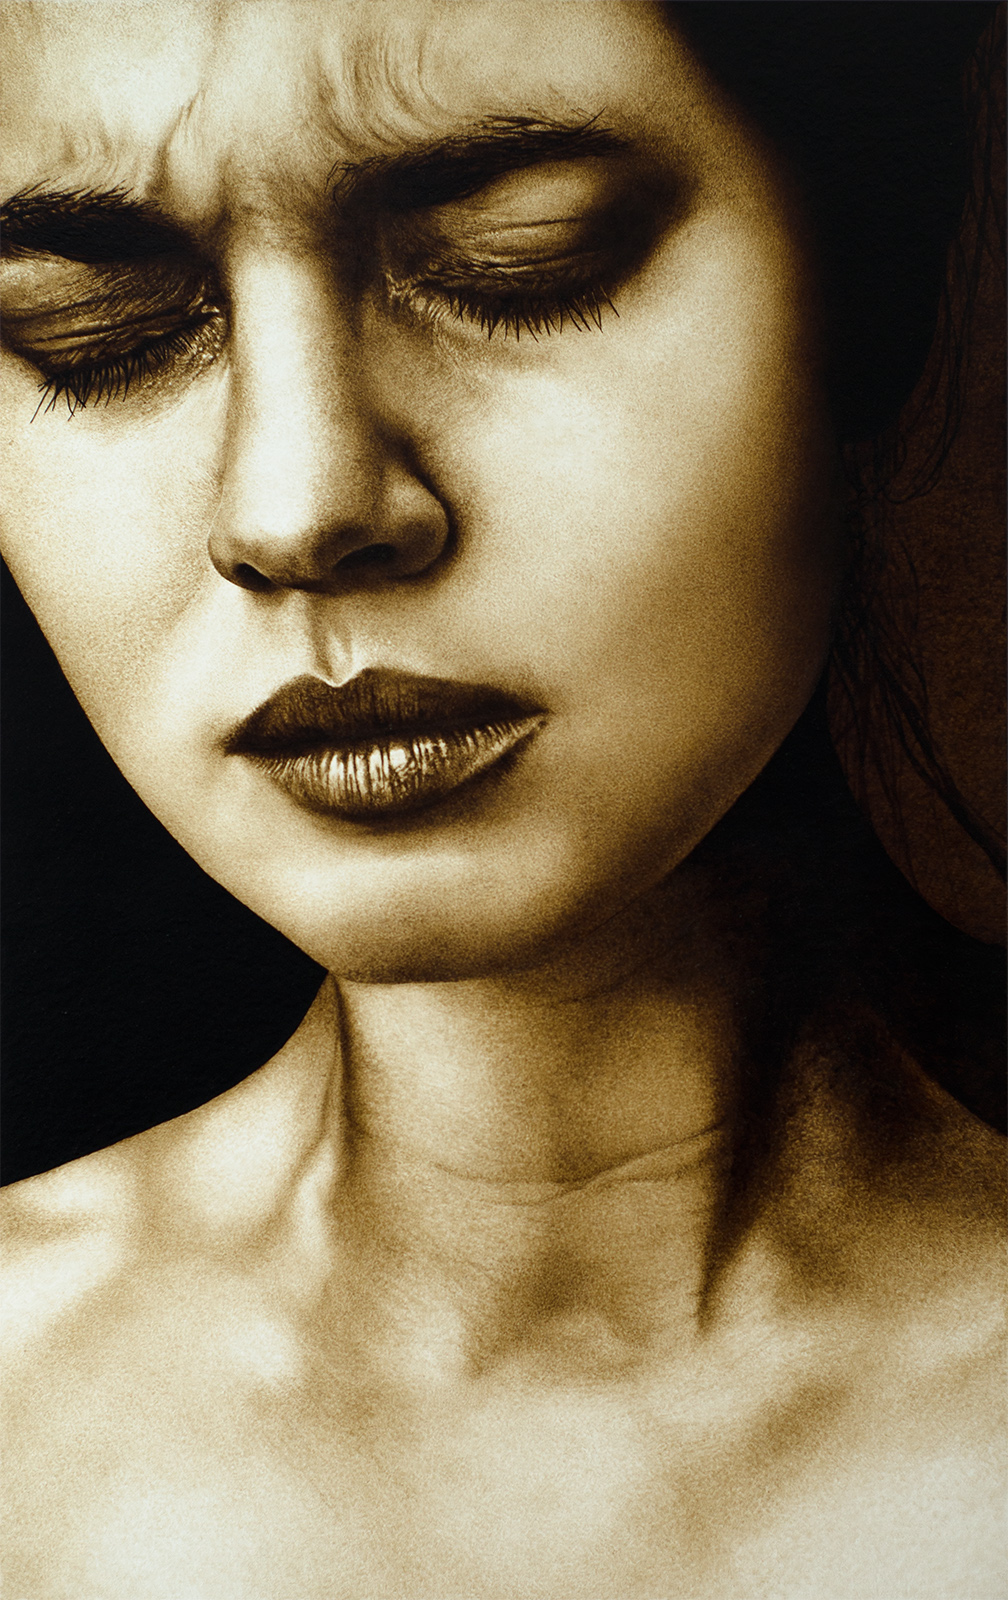 Coffee painting 17 by neutrinoz on deviantart for Painting with coffee